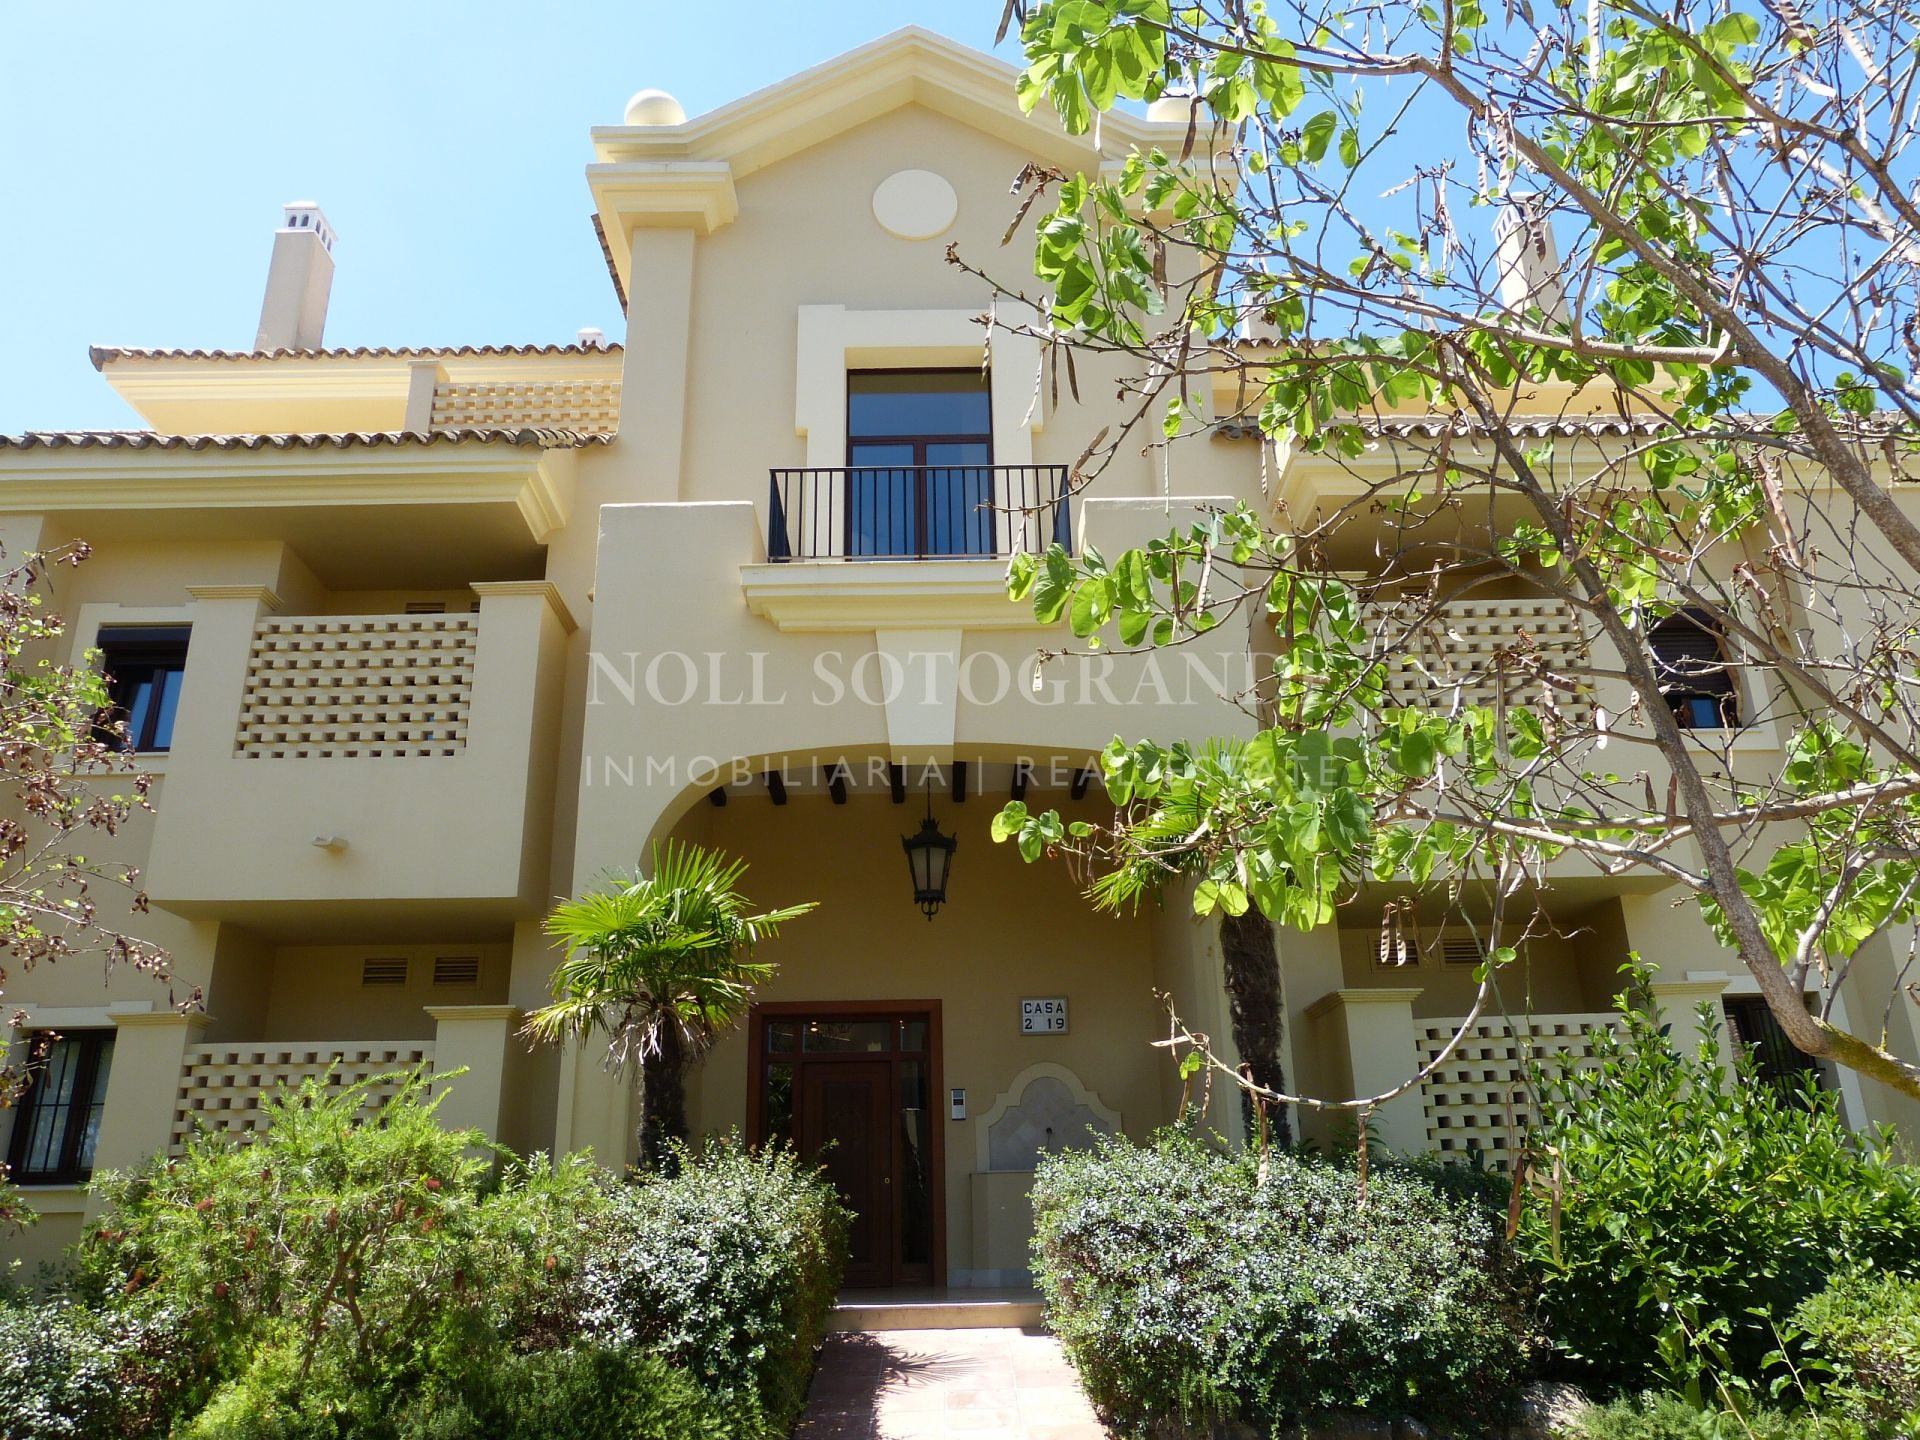 Sotogrande, Valgrande - 3 bedroom Apartment For Sale